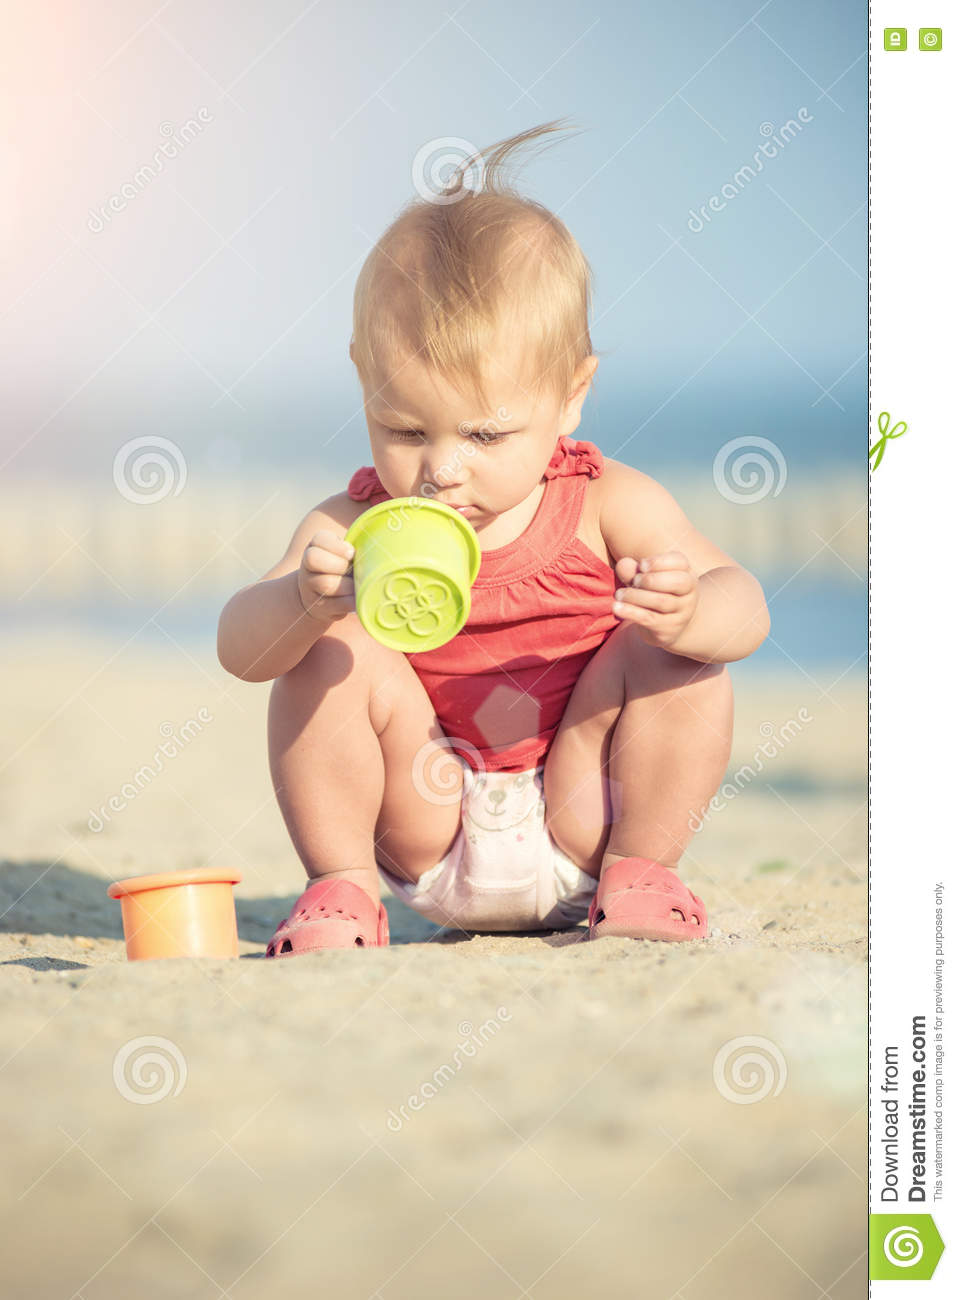 Baby Girl In Red Dress Playing On Sandy Beach Near The Sea